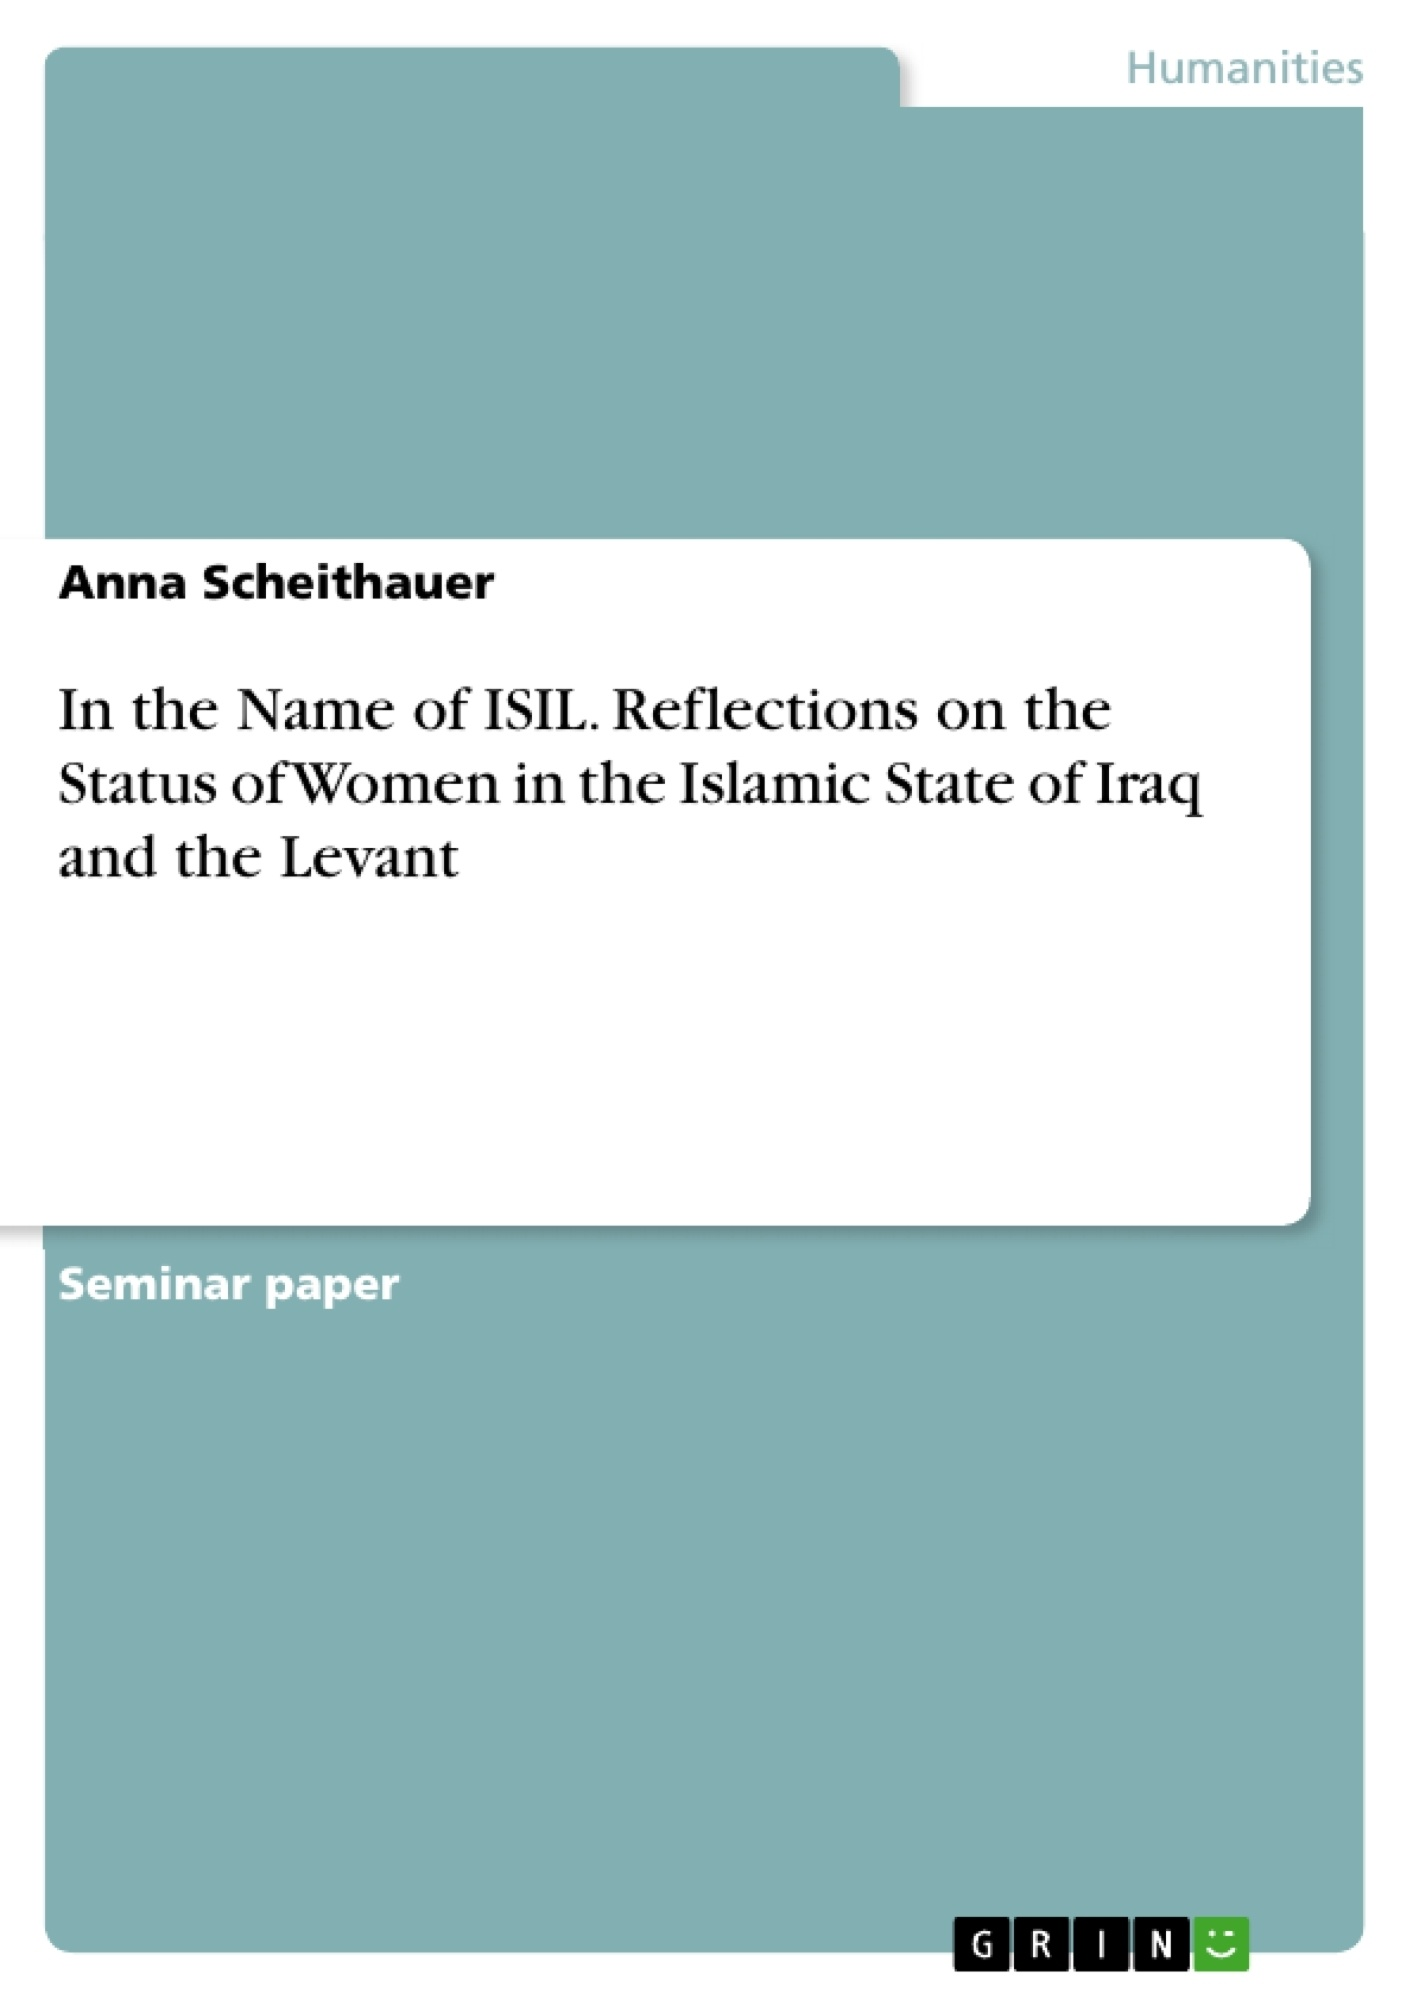 Title: In the Name of ISIL. Reflections on the Status of Women in the Islamic State of Iraq and the Levant